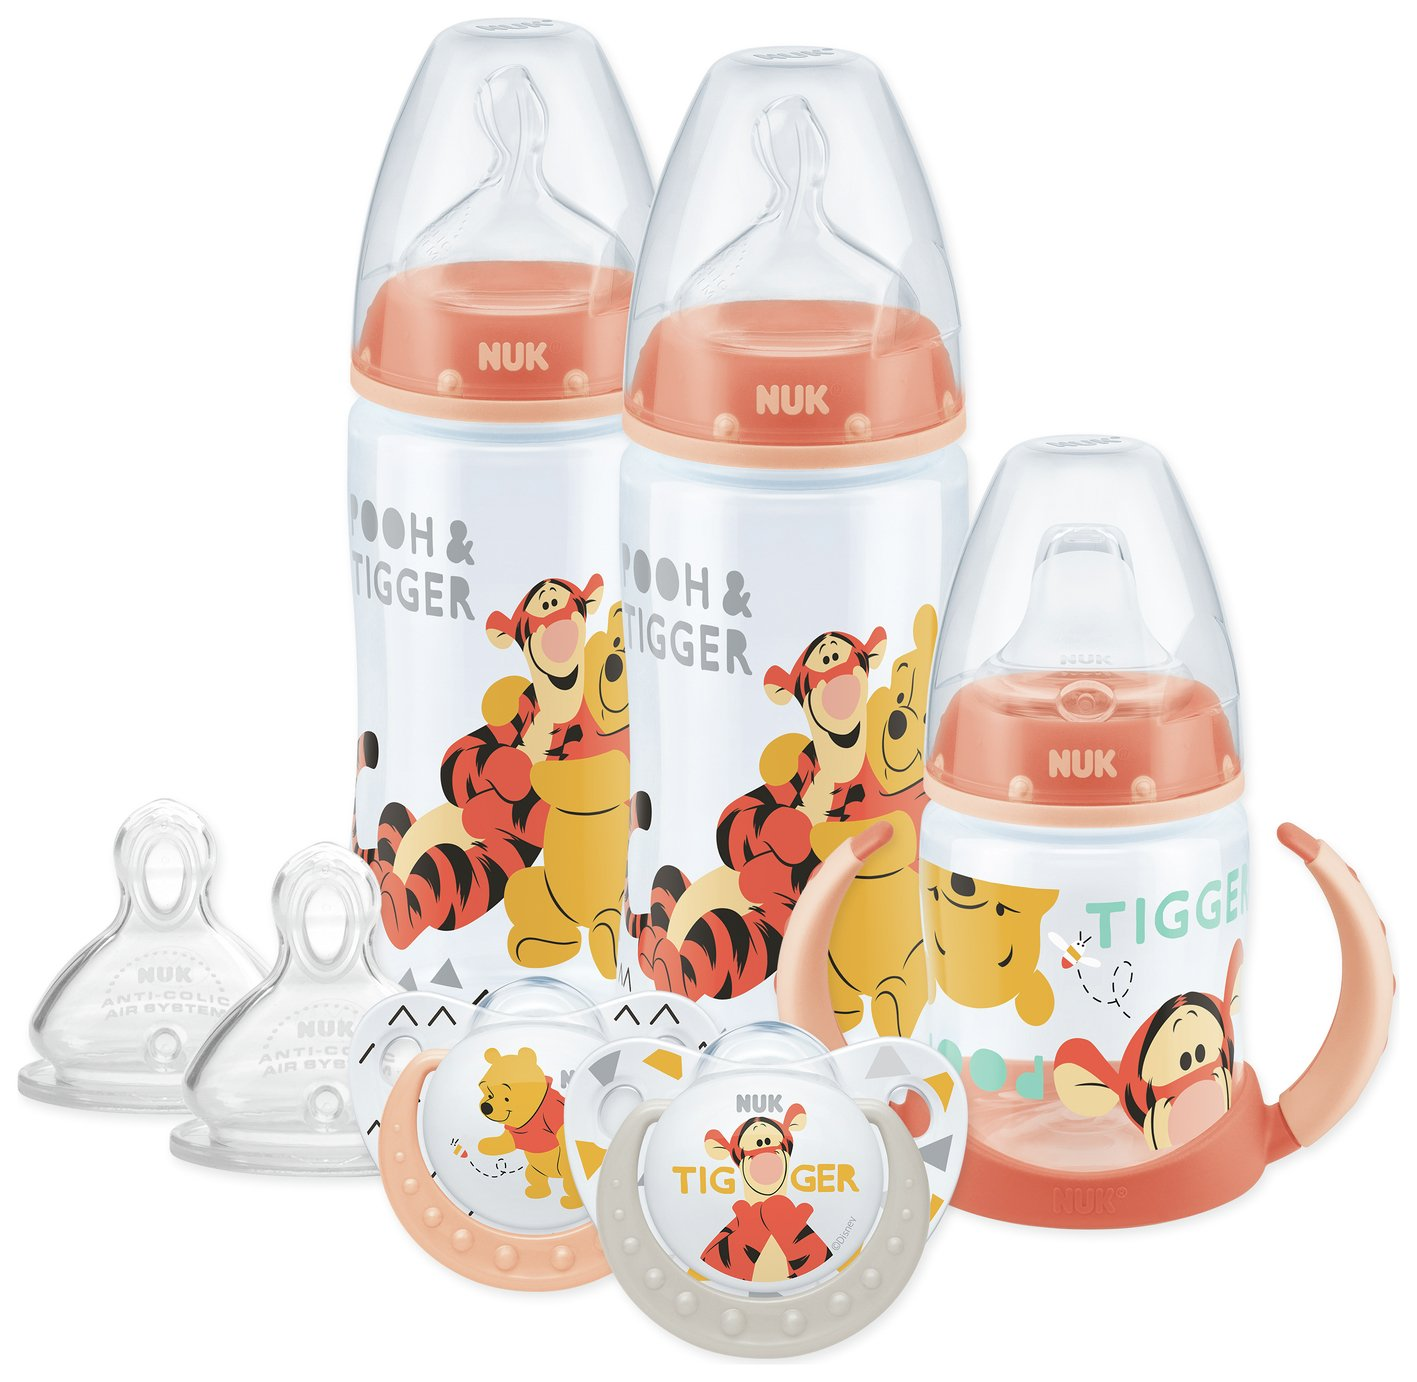 NUK Winnie the Pooh Bottle and Cup Set